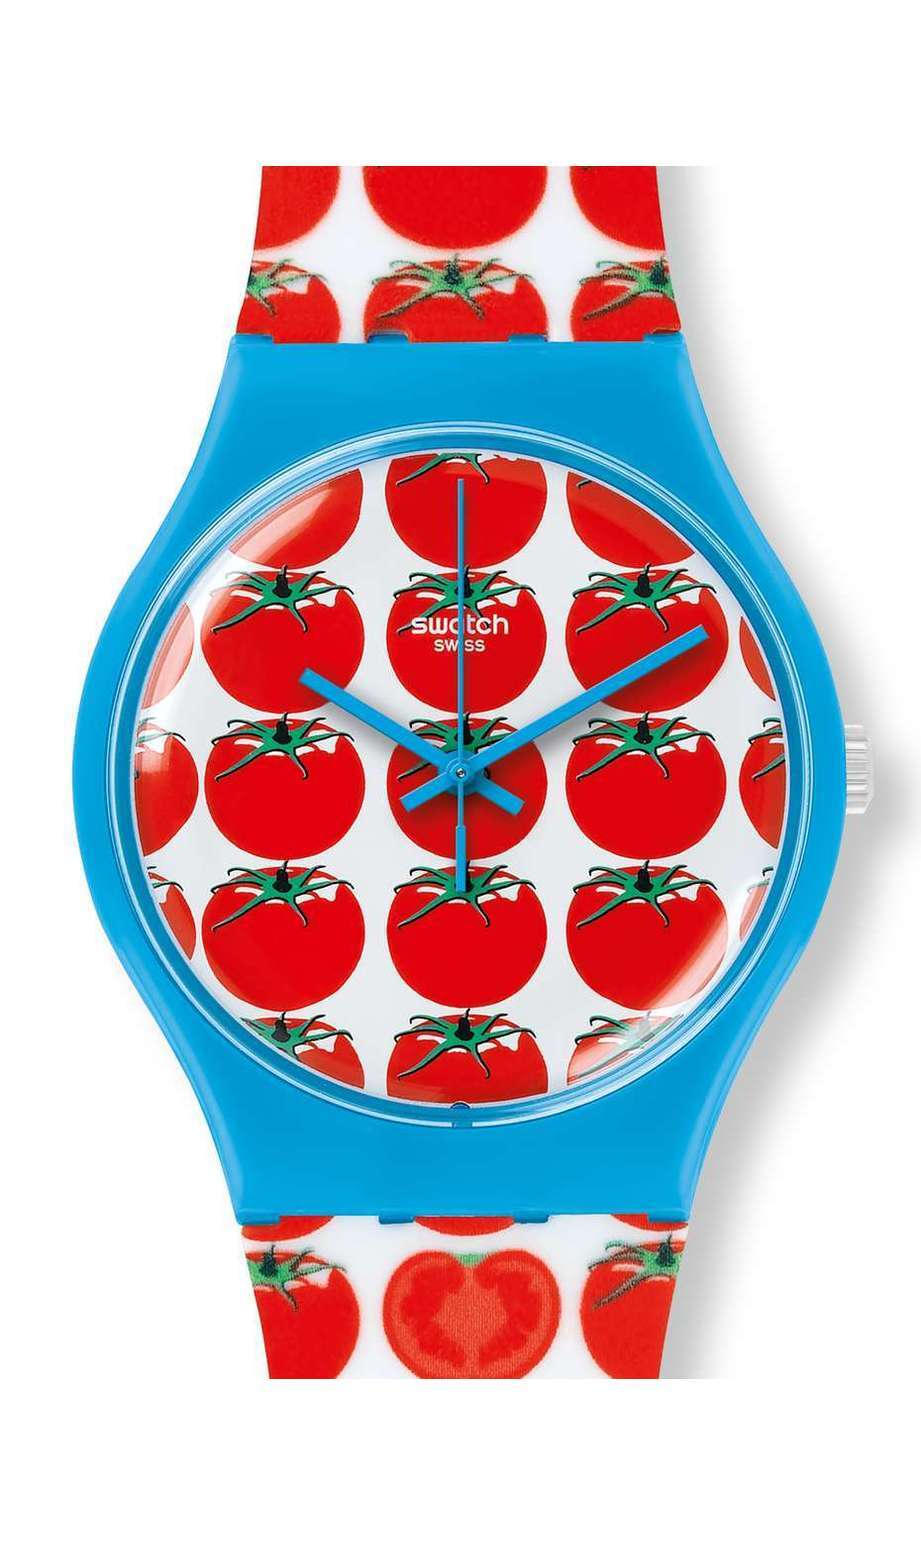 Swatch - MAXI TOMATELLA - 1